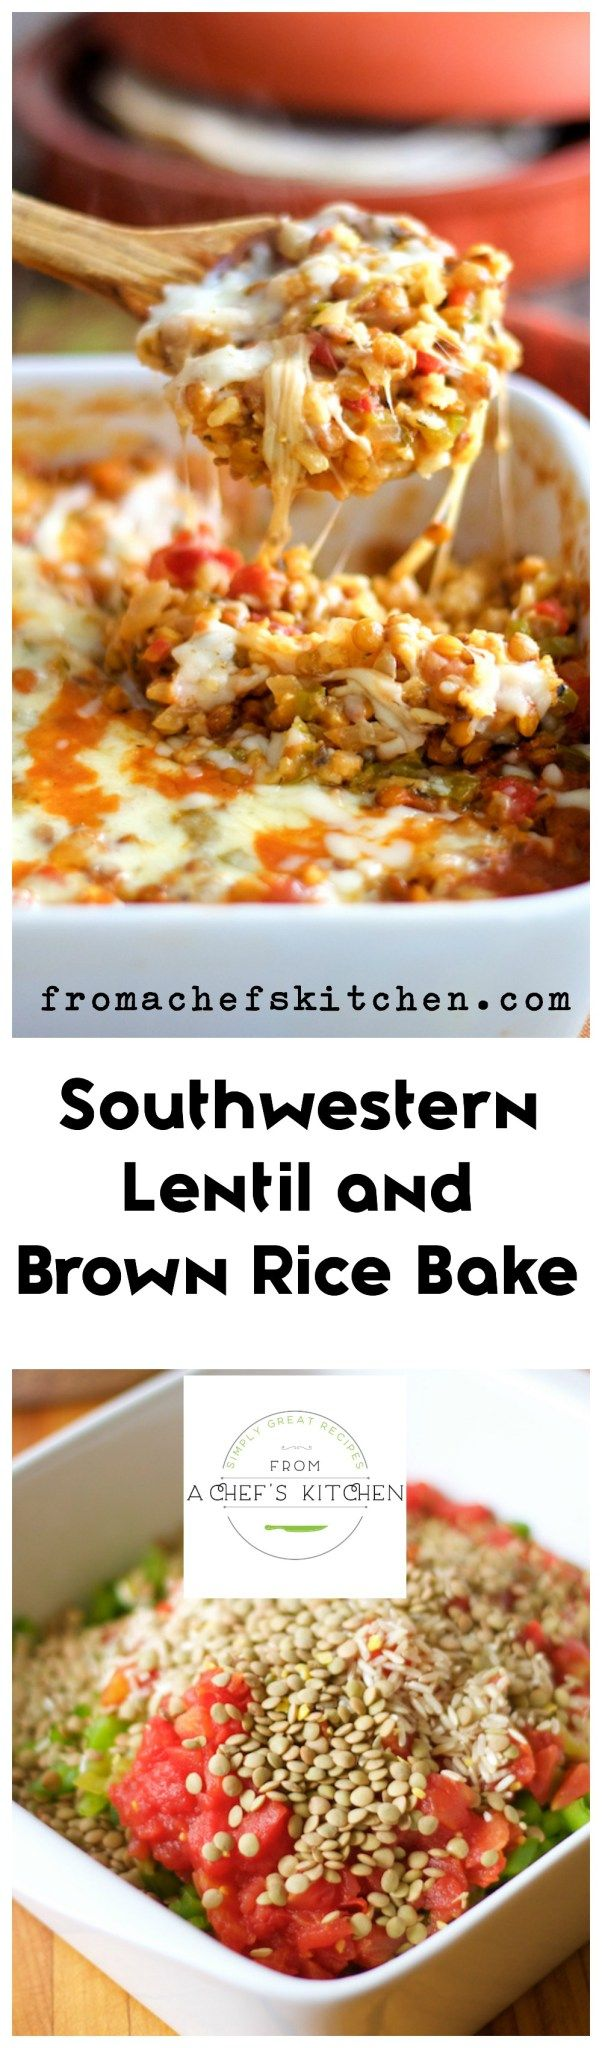 Southwestern Lentil and Brown Rice Bake is an easy, delicious one-pan meatless dinner even a carnivore will love!